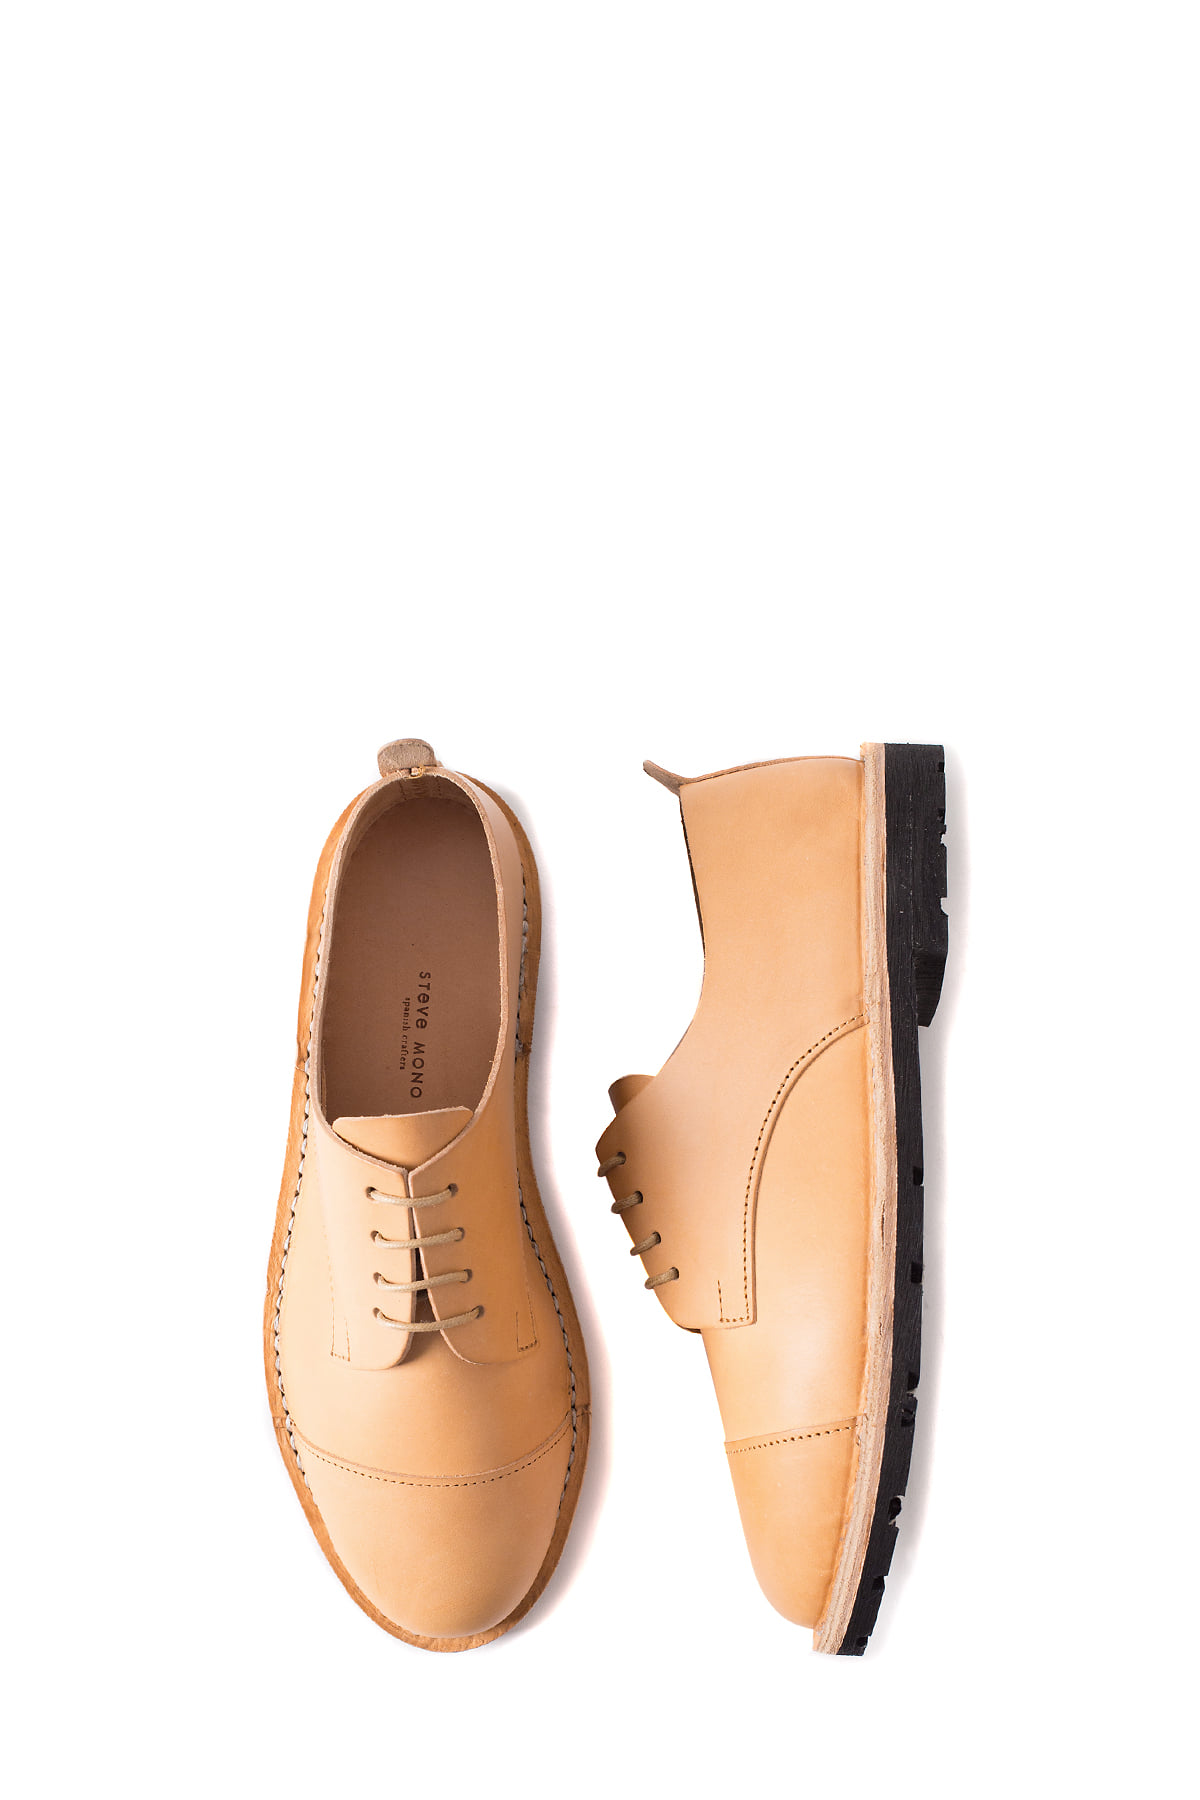 STEVE MONO : Artisanal Shoes 10/03 (Natural)